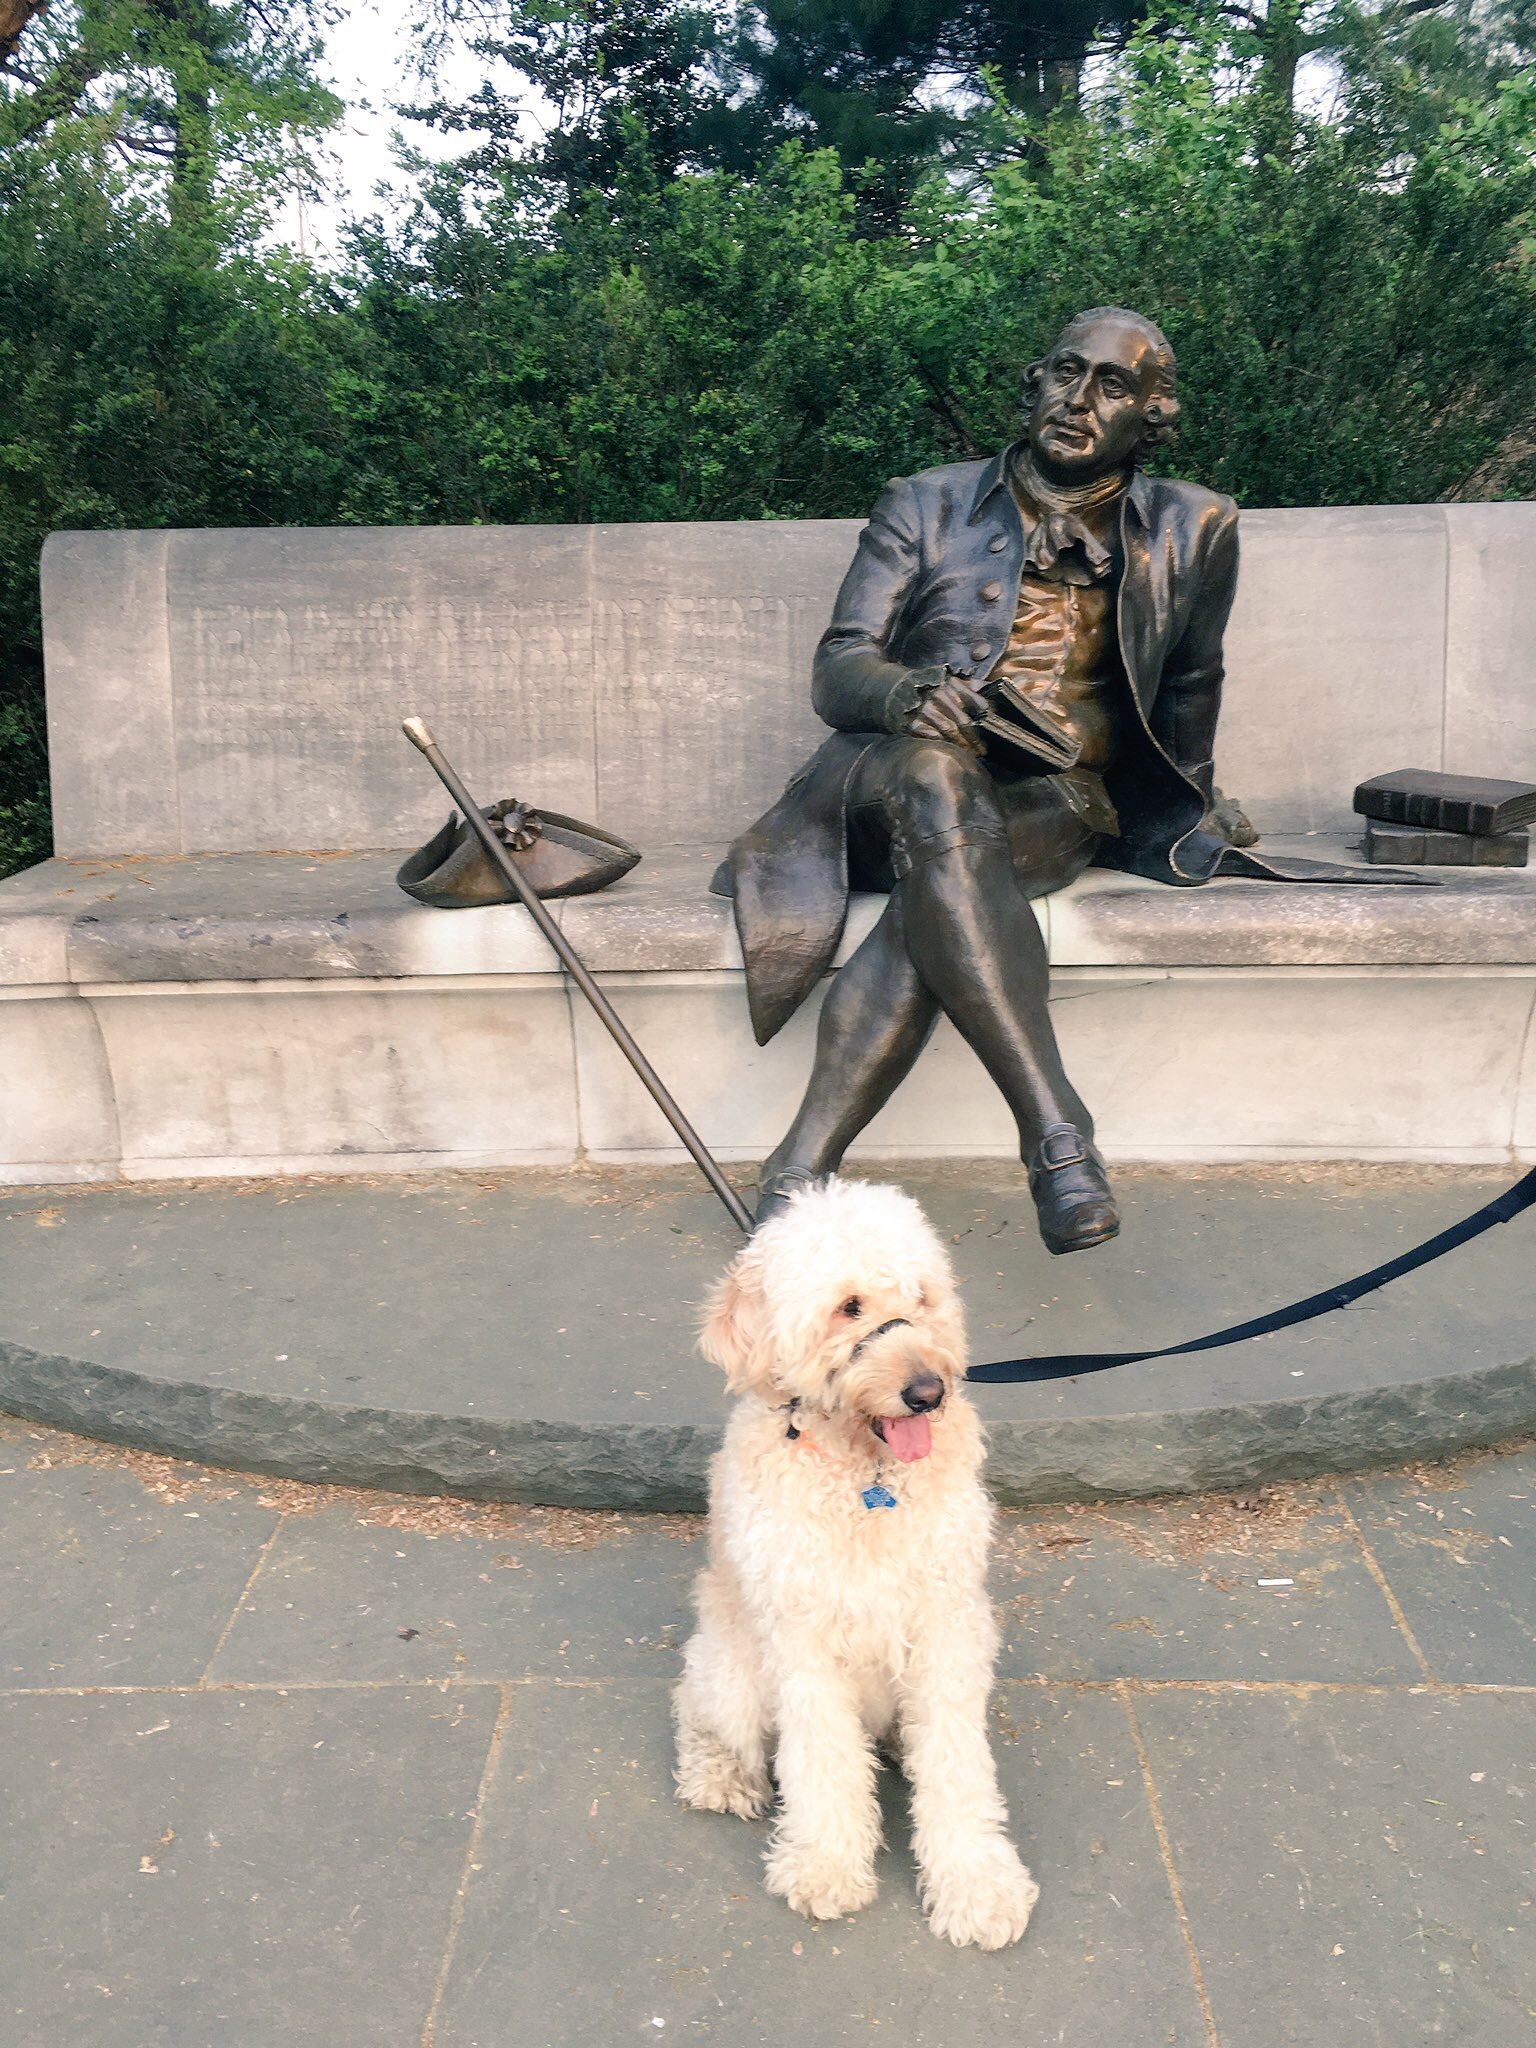 Pausing for a moment at the George Mason monument.